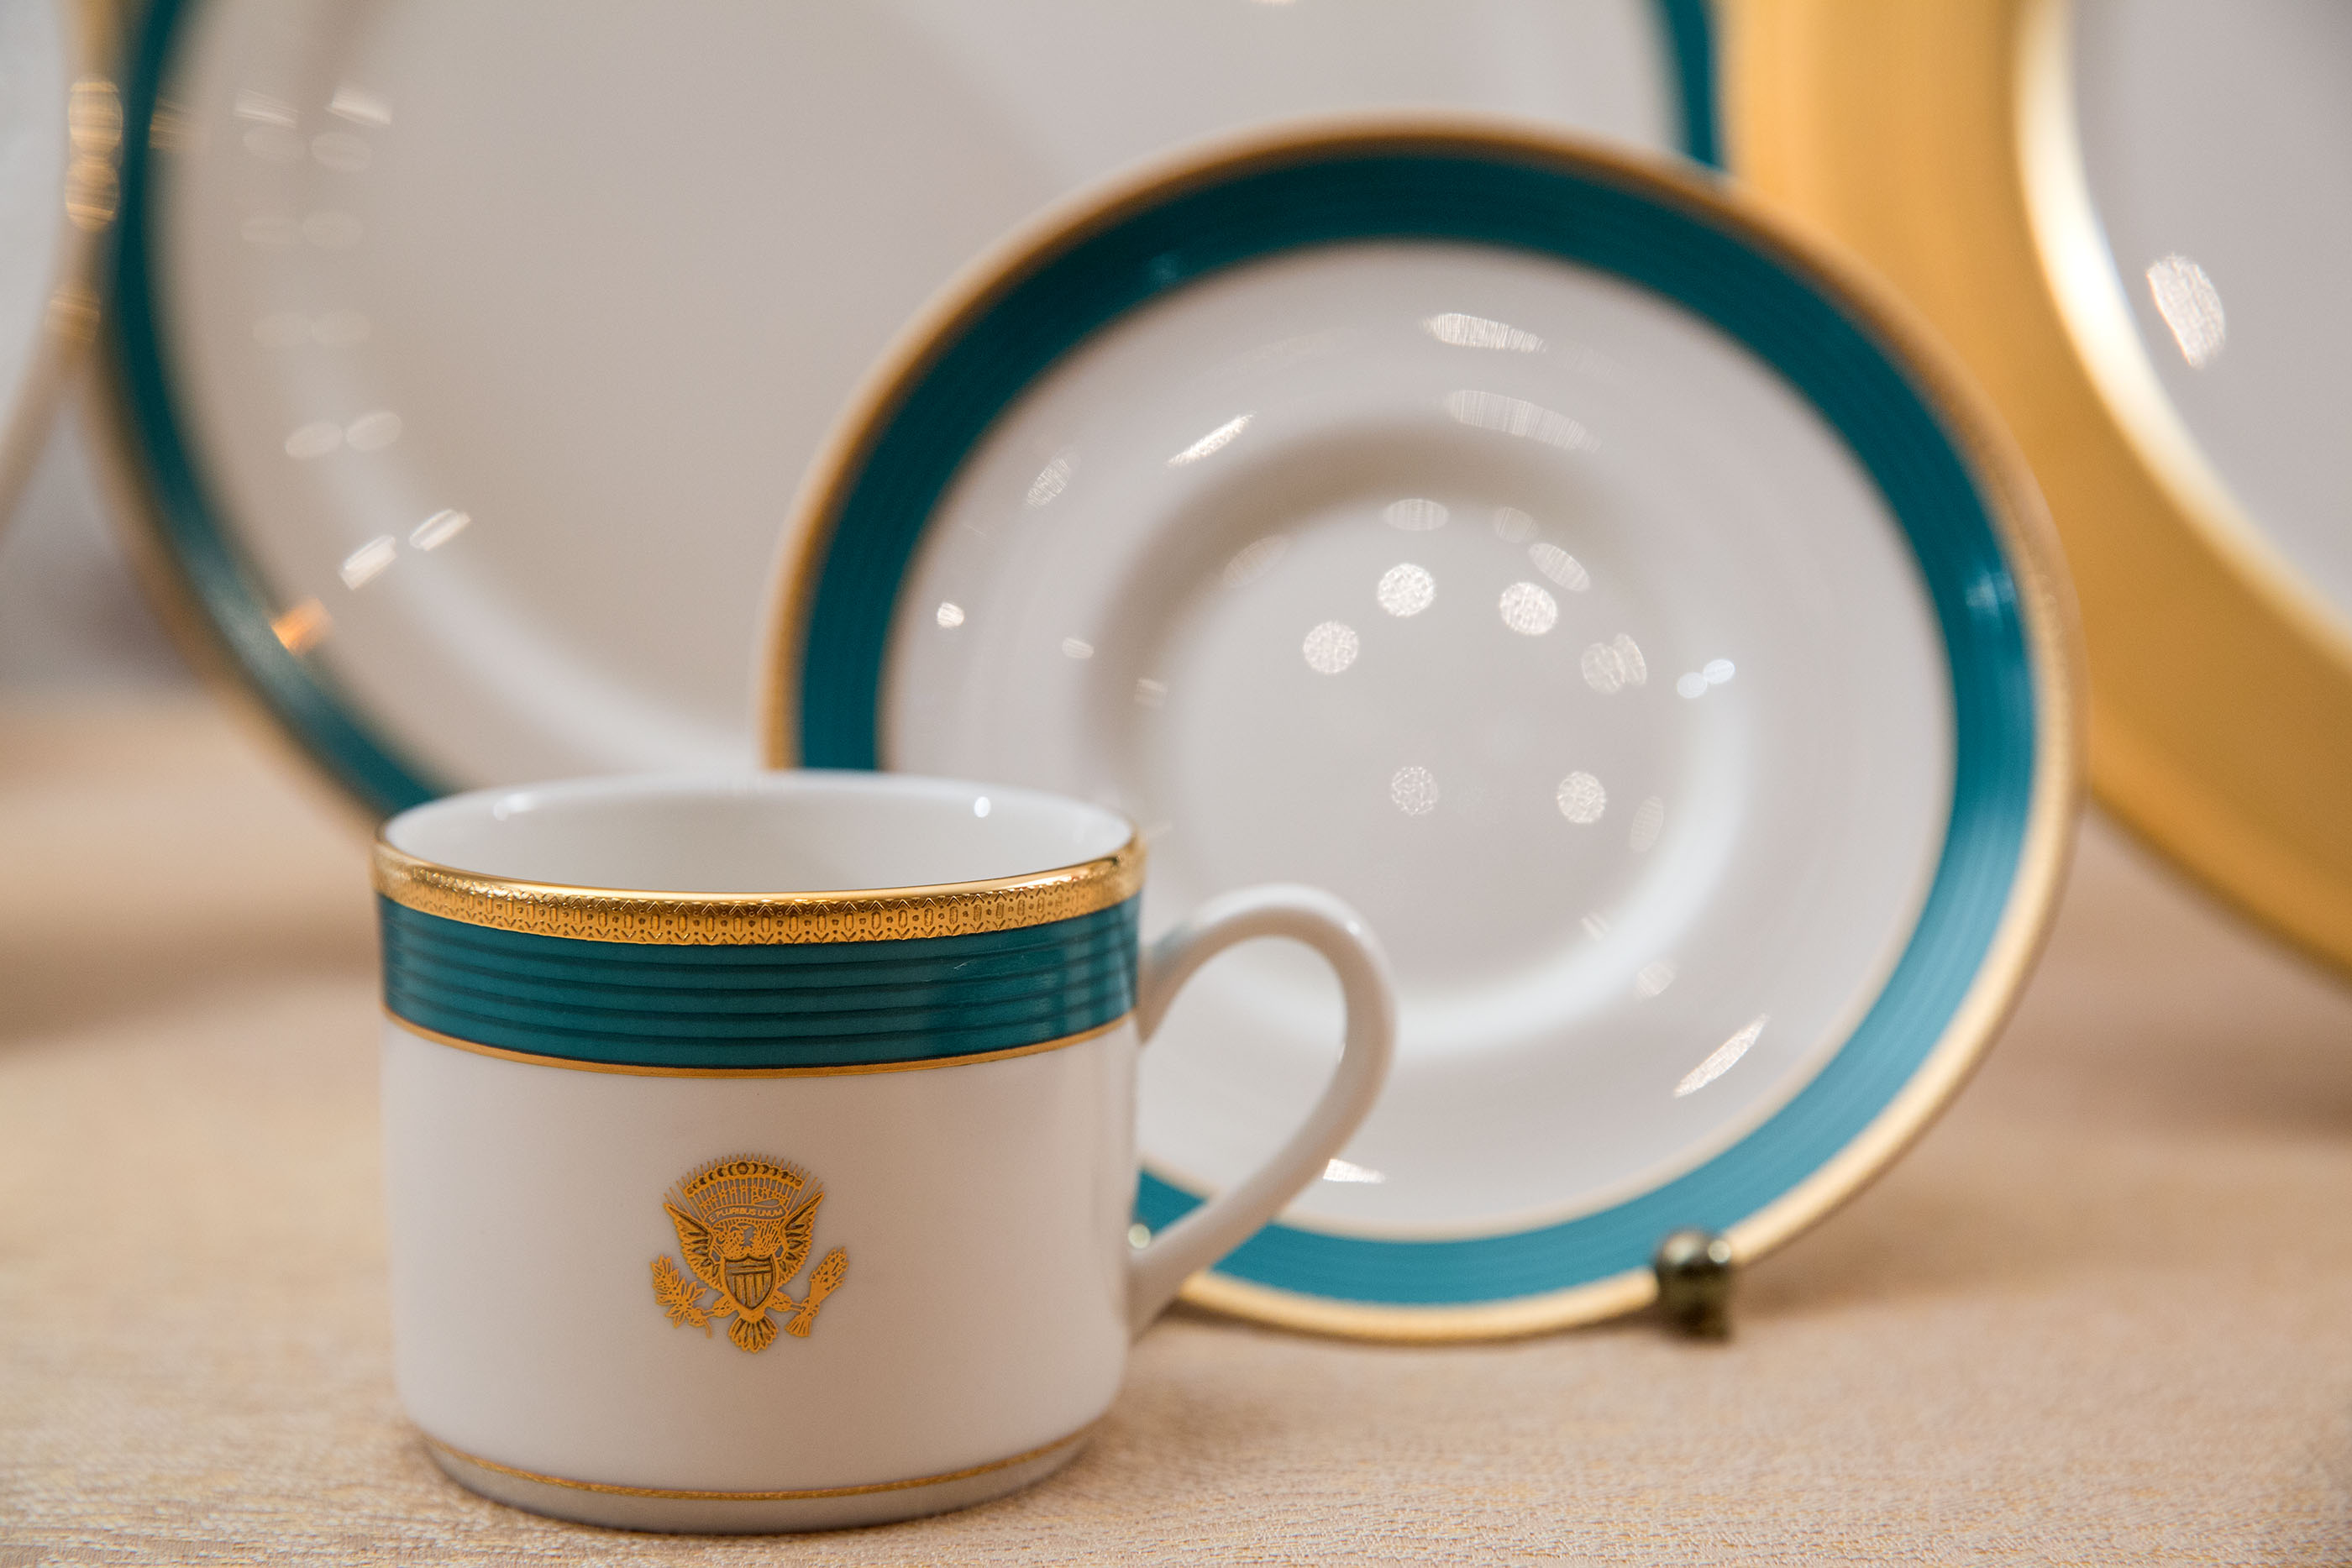 Obama White House China Raleigh DeGeer Amyx & Pickard China: small town company with presidential ties